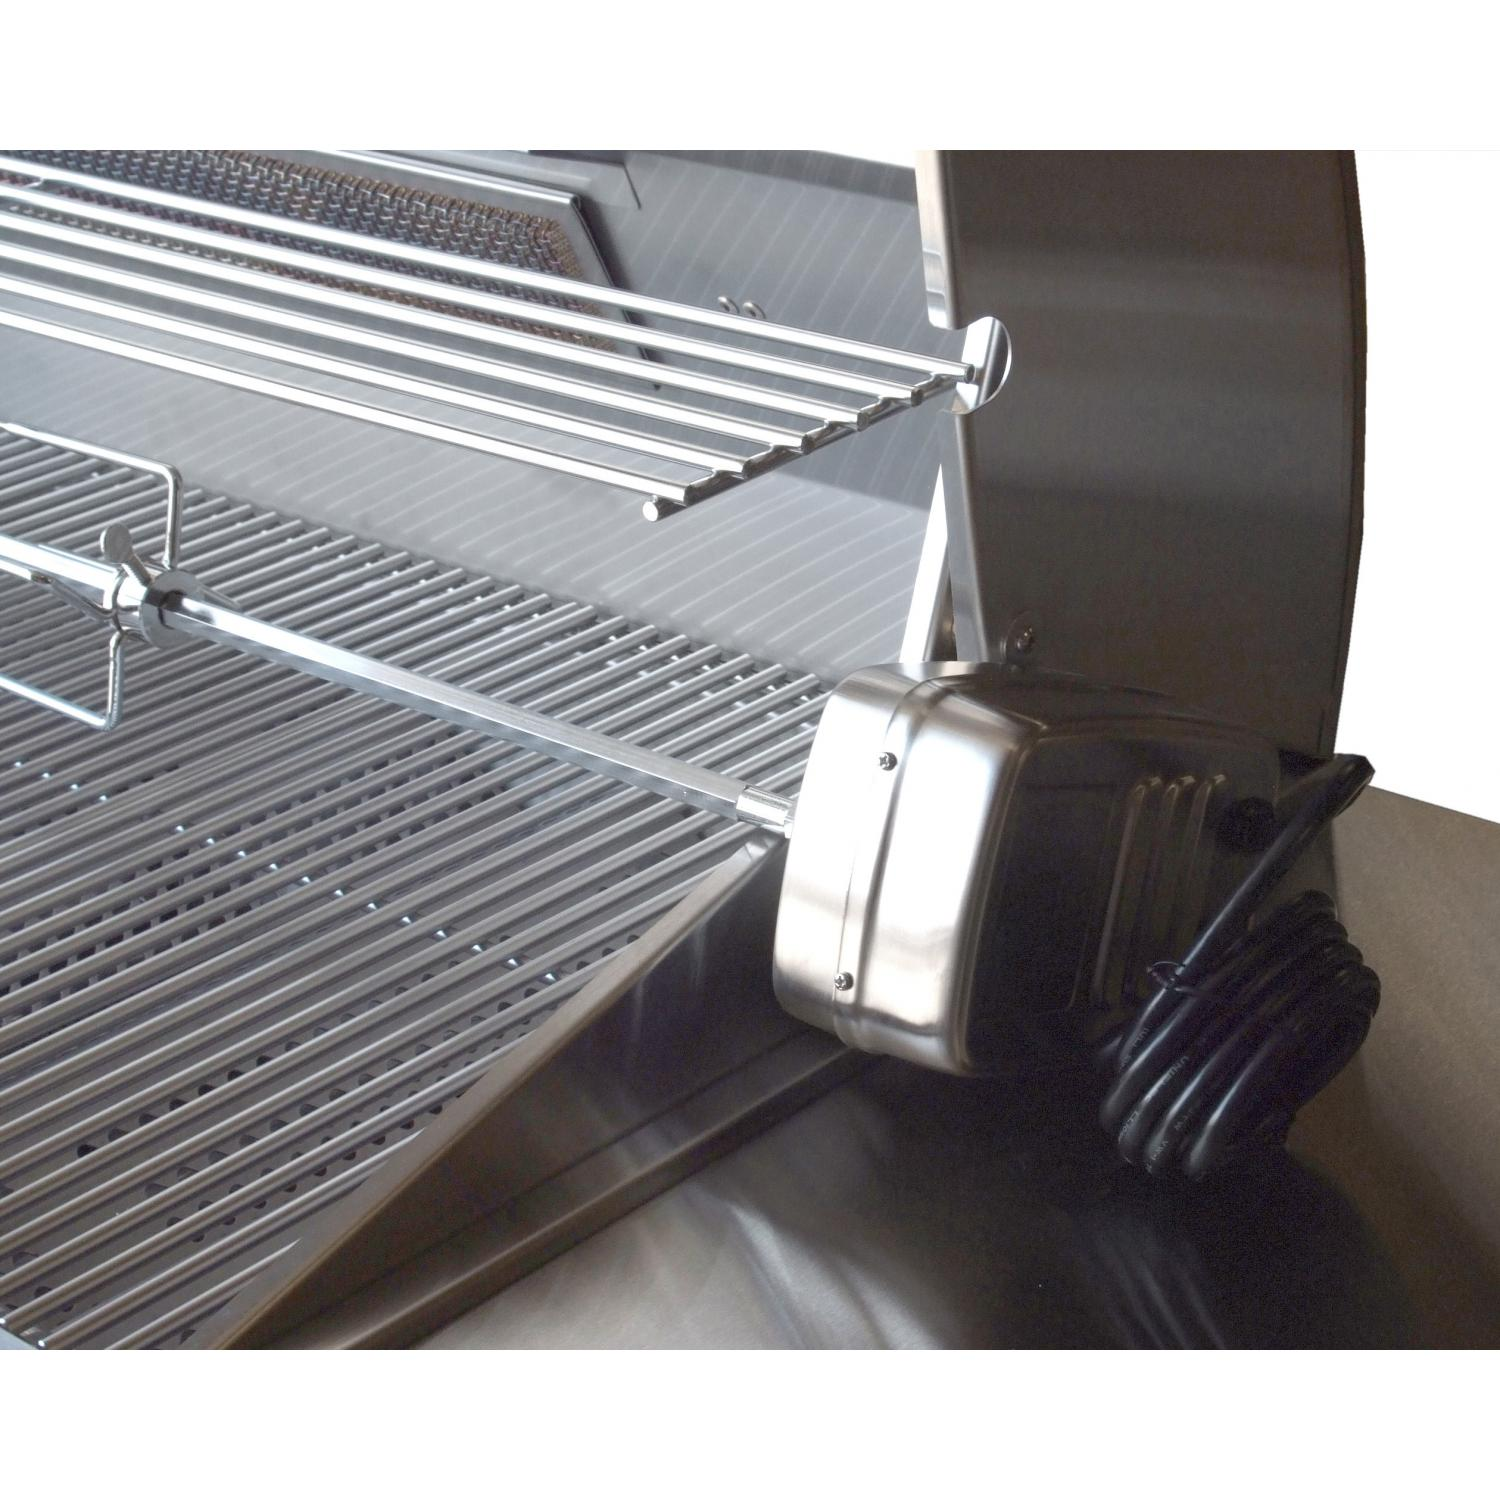 American Outdoor Grill Warming Rack For AOG 24 Inch Grills